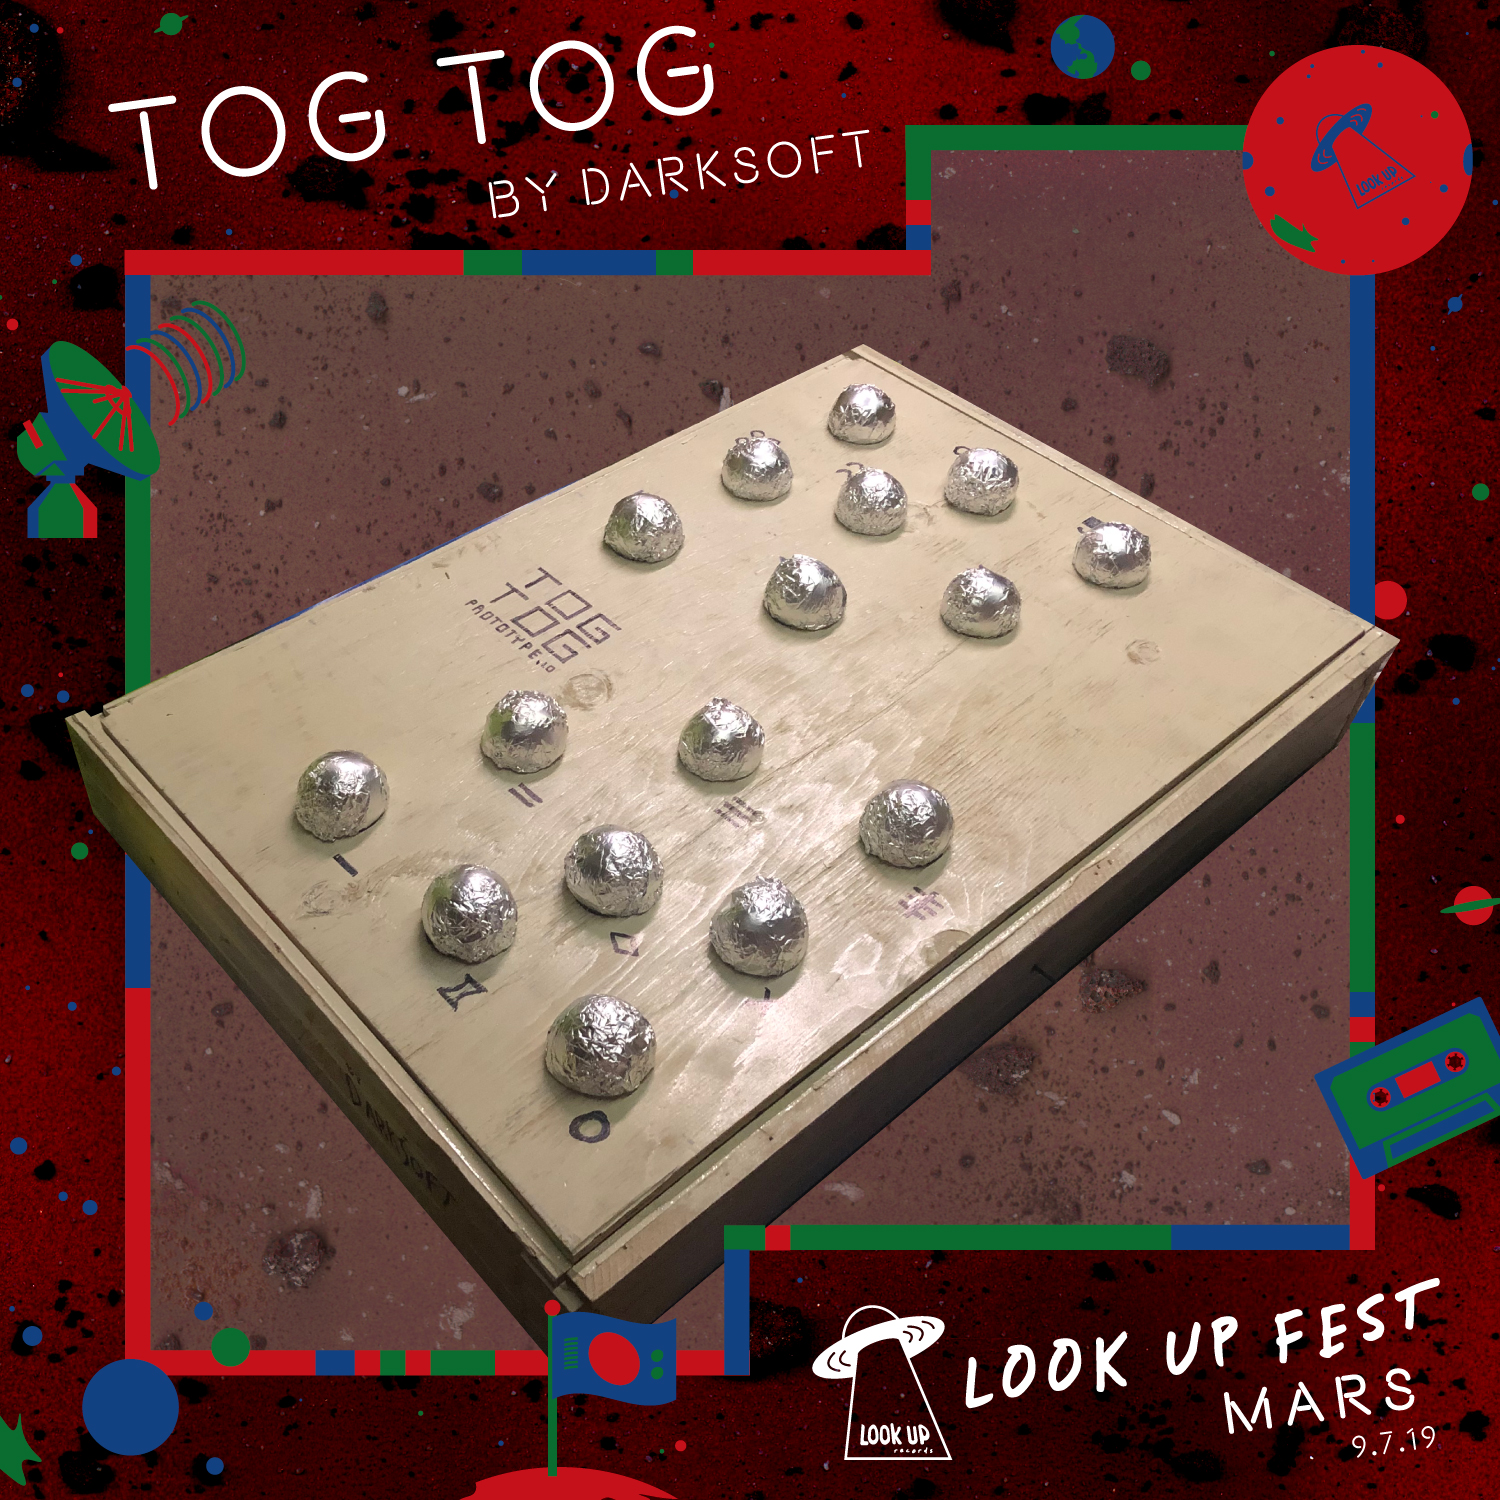 TOG TOG - Acculturate to Martian society by testing out TOG TOG, a prototype Martian musical instrument built by Darksoft. Two can TOG! Or u can Tog solo.